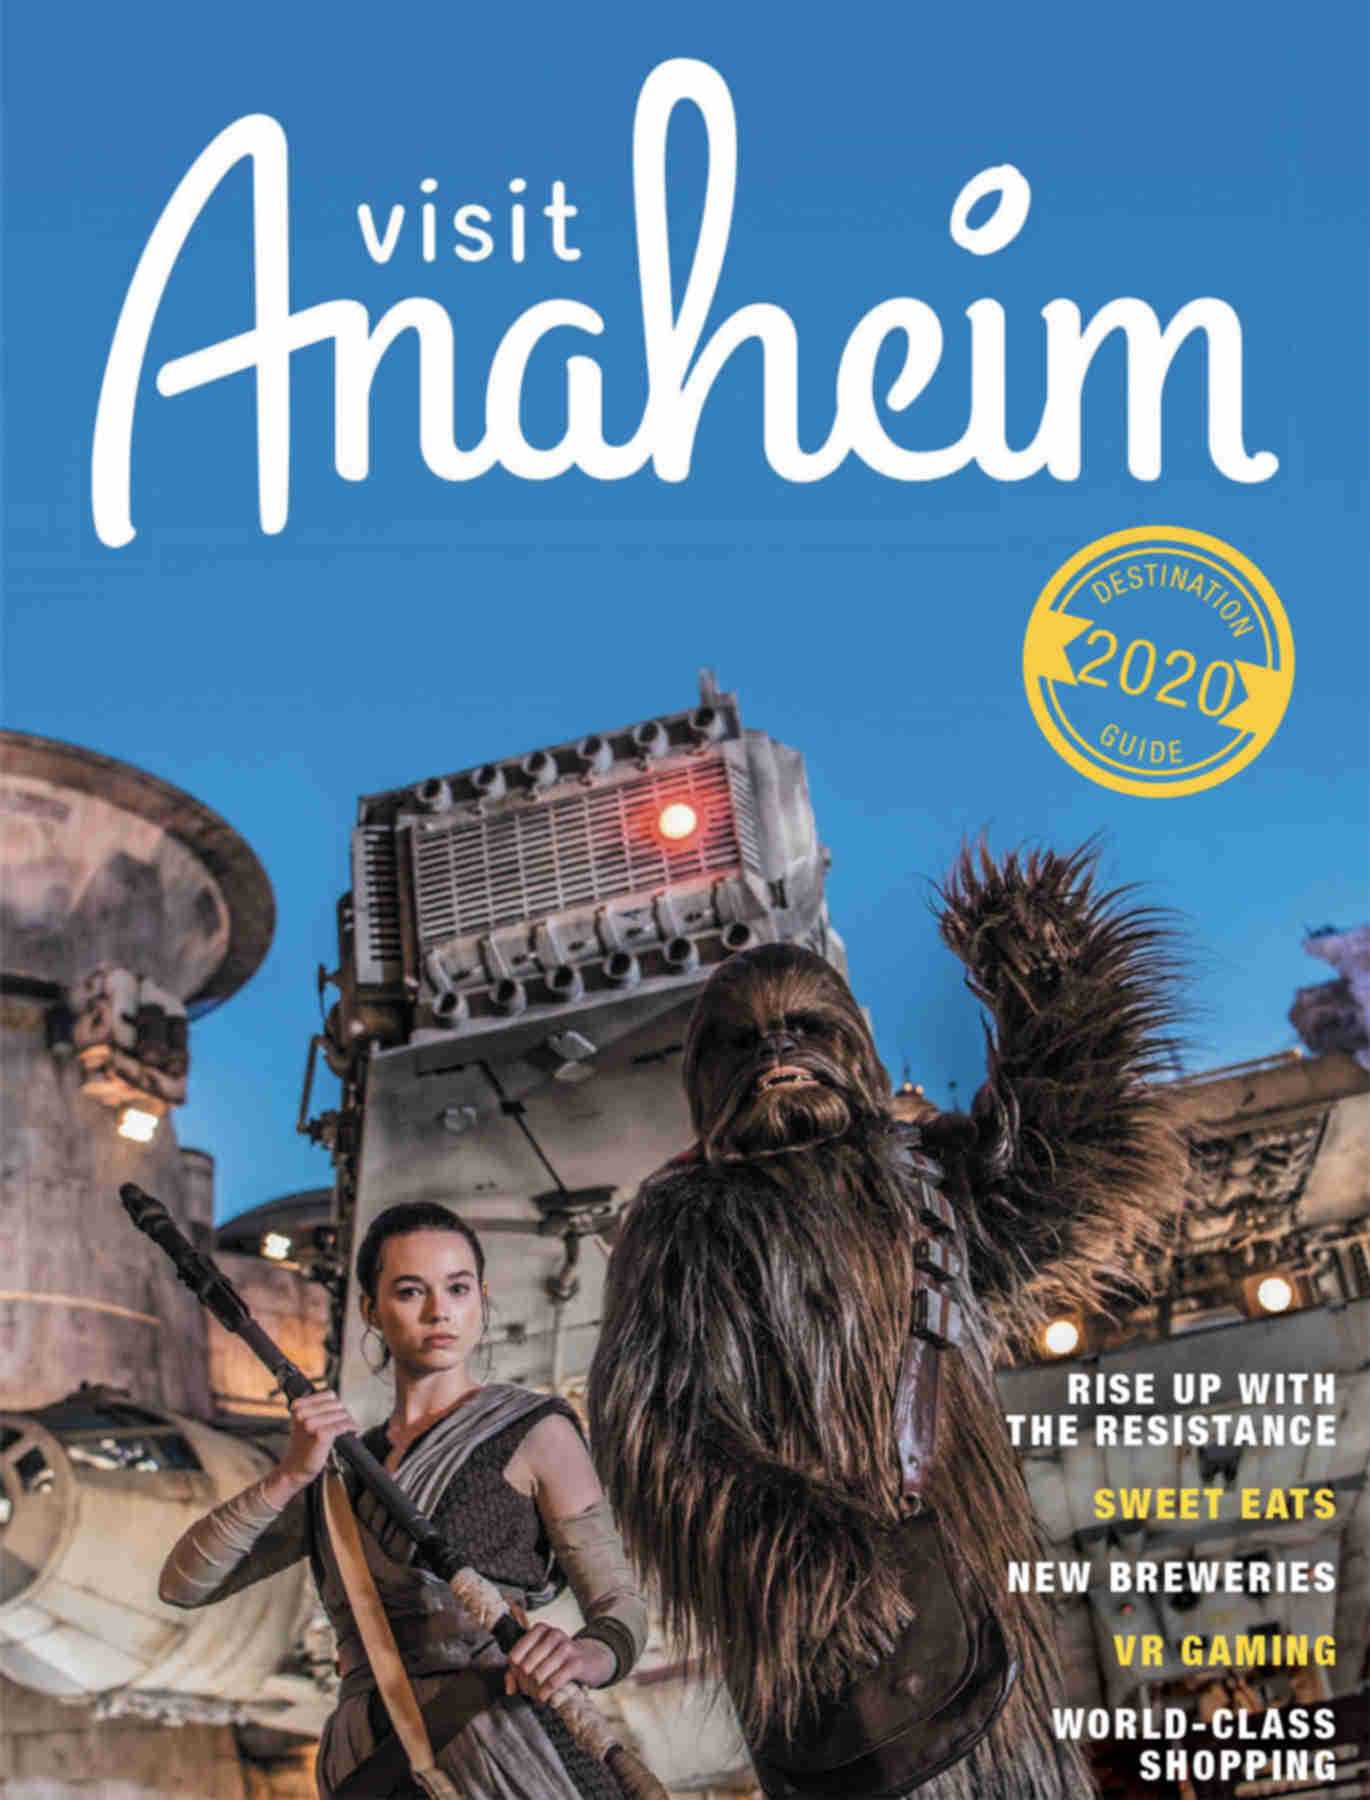 2020 Anaheim Destination Guide